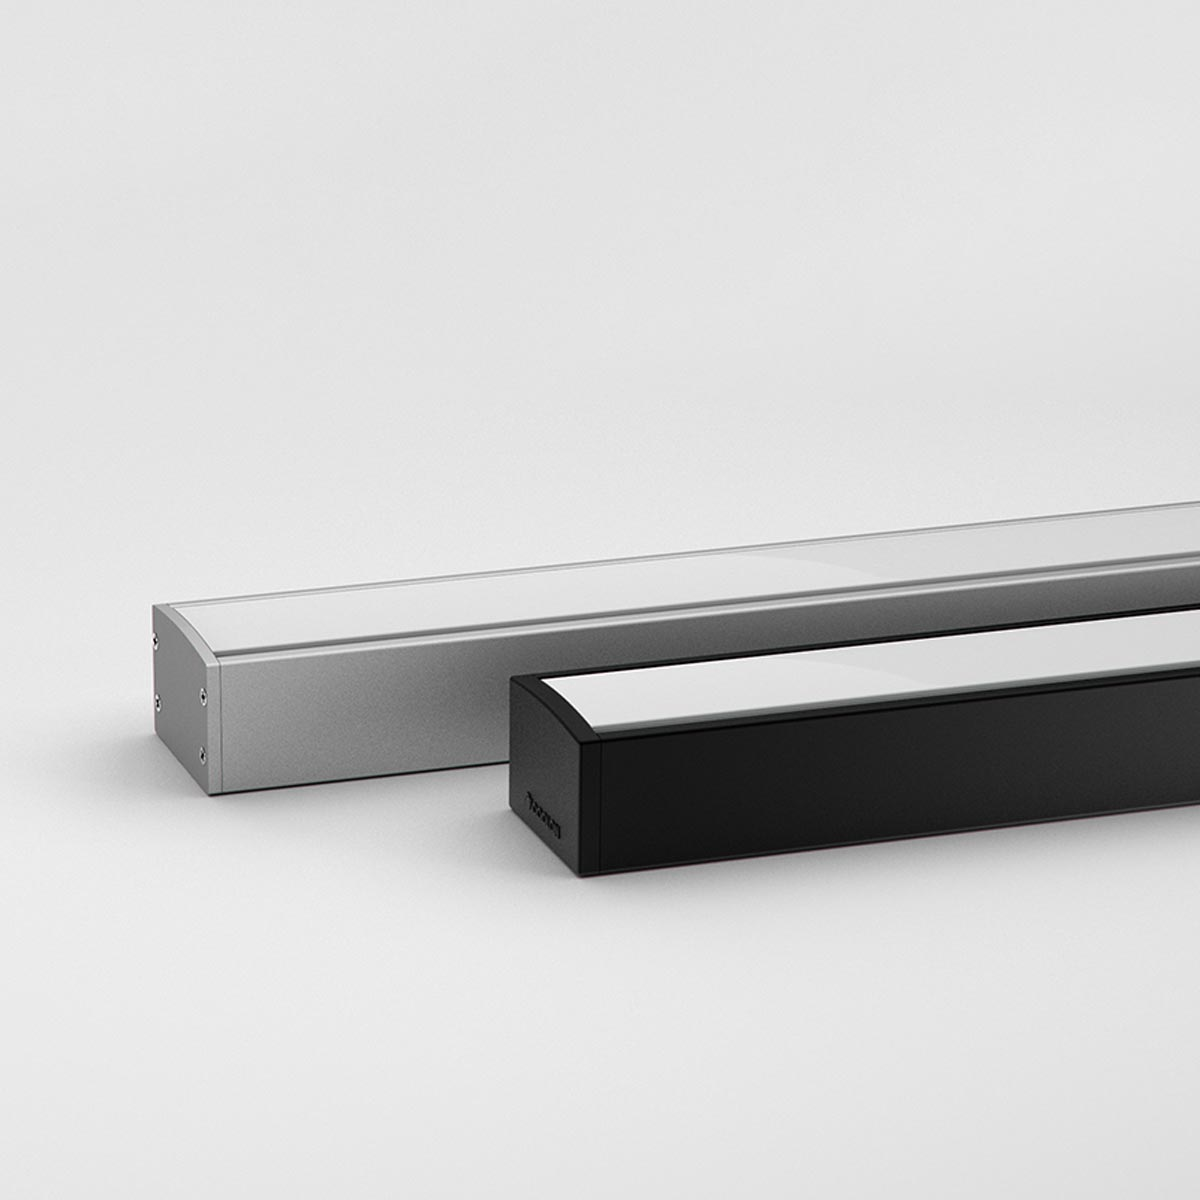 Electro - Robust Linear Luminaire with Homogeneous Light Output (22W or 40W)